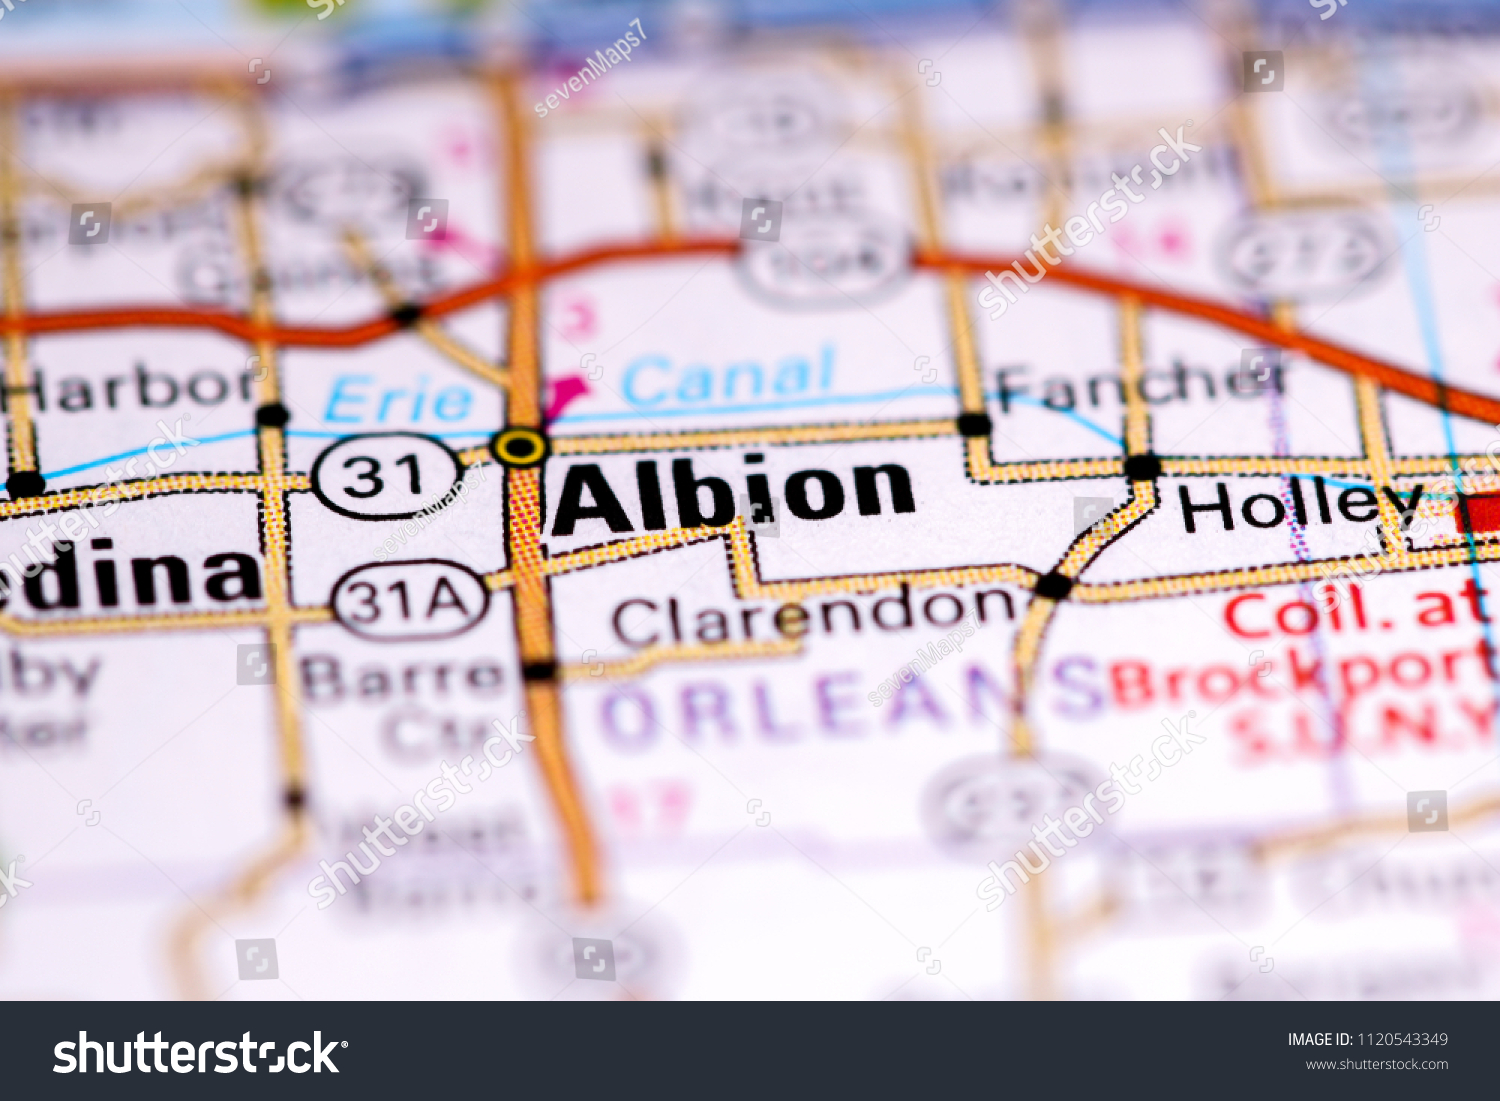 Albion Idaho Map.Albion New York Usa On Map Stock Photo Edit Now 1120543349